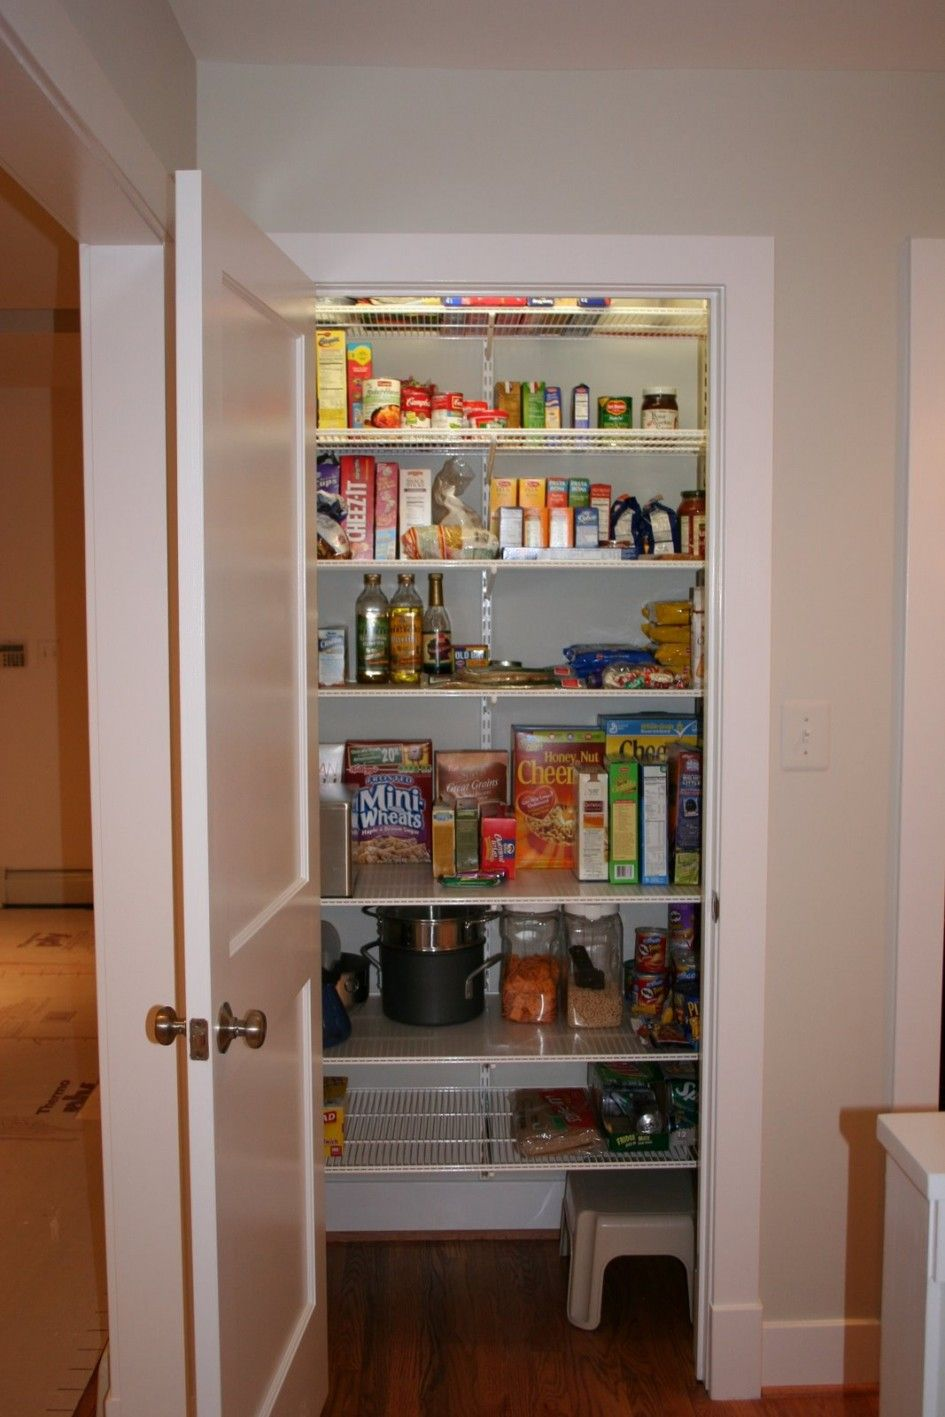 Kitchen Pantry Shelving Systems Concrete Floor Storage Awe Inspiring Closet With Wall Mounted Wire On Adjustable Shelf Brackets Also Plastic